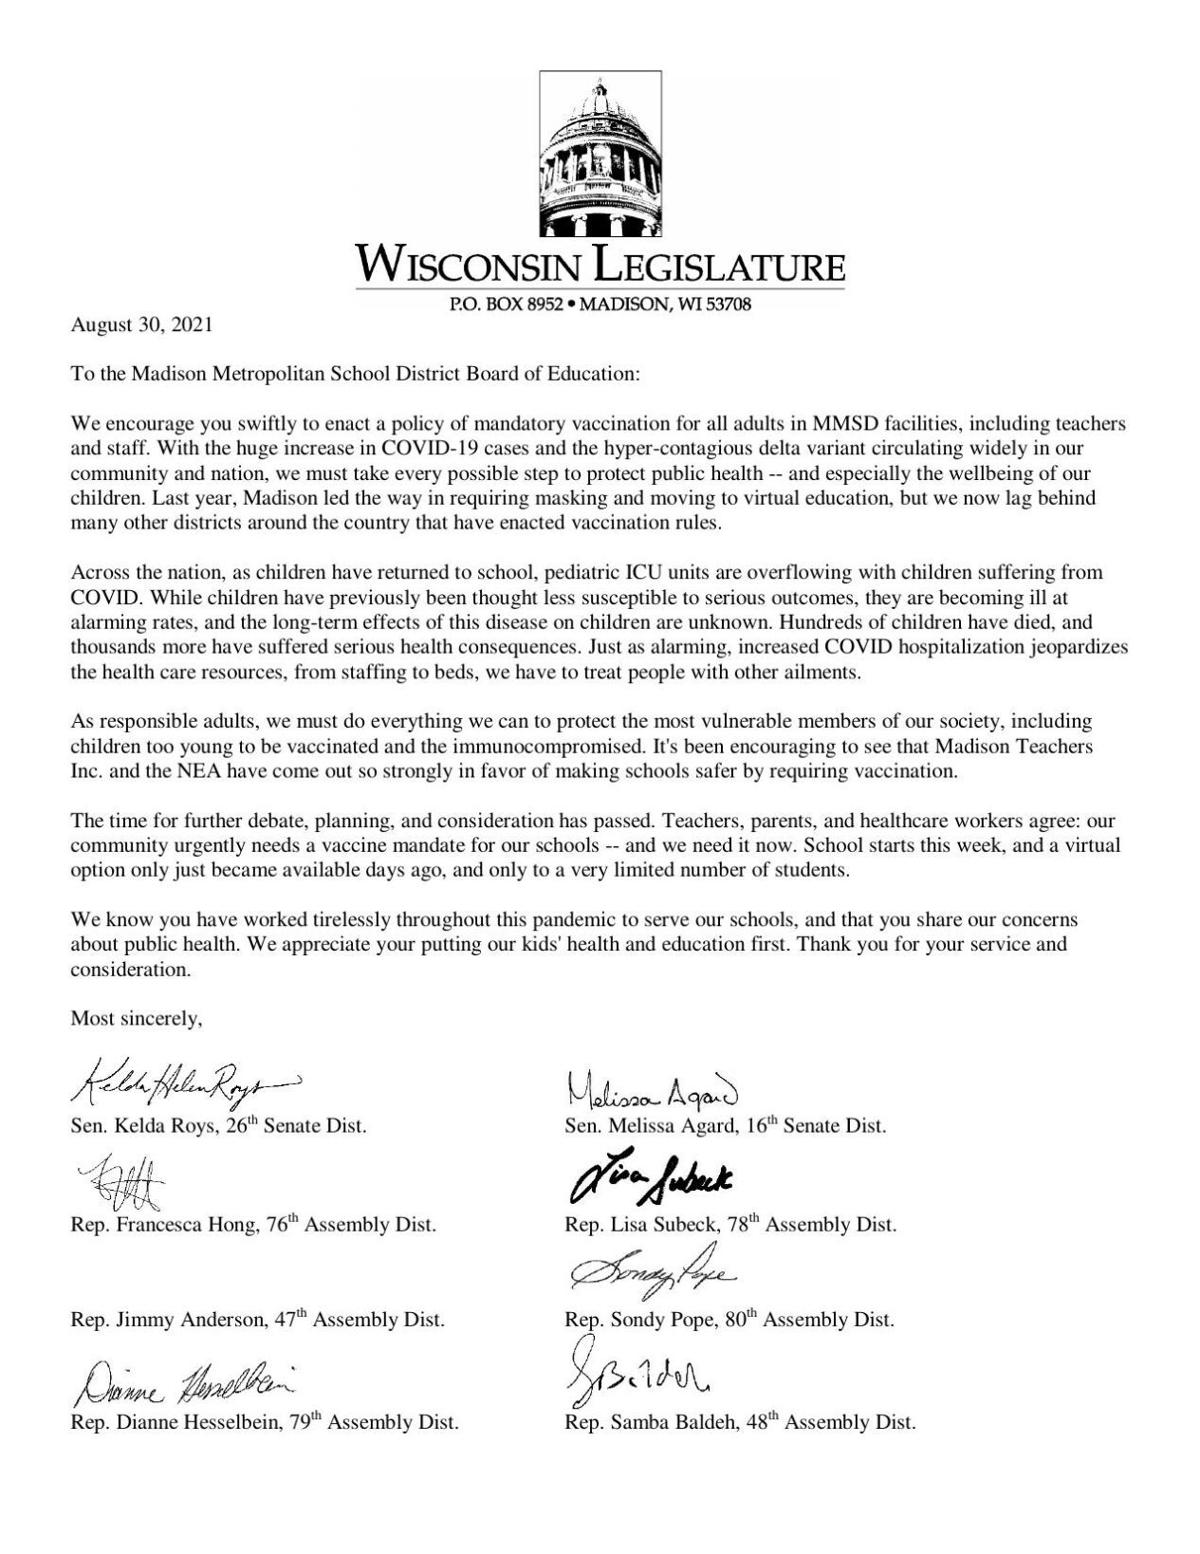 State lawmakers letter